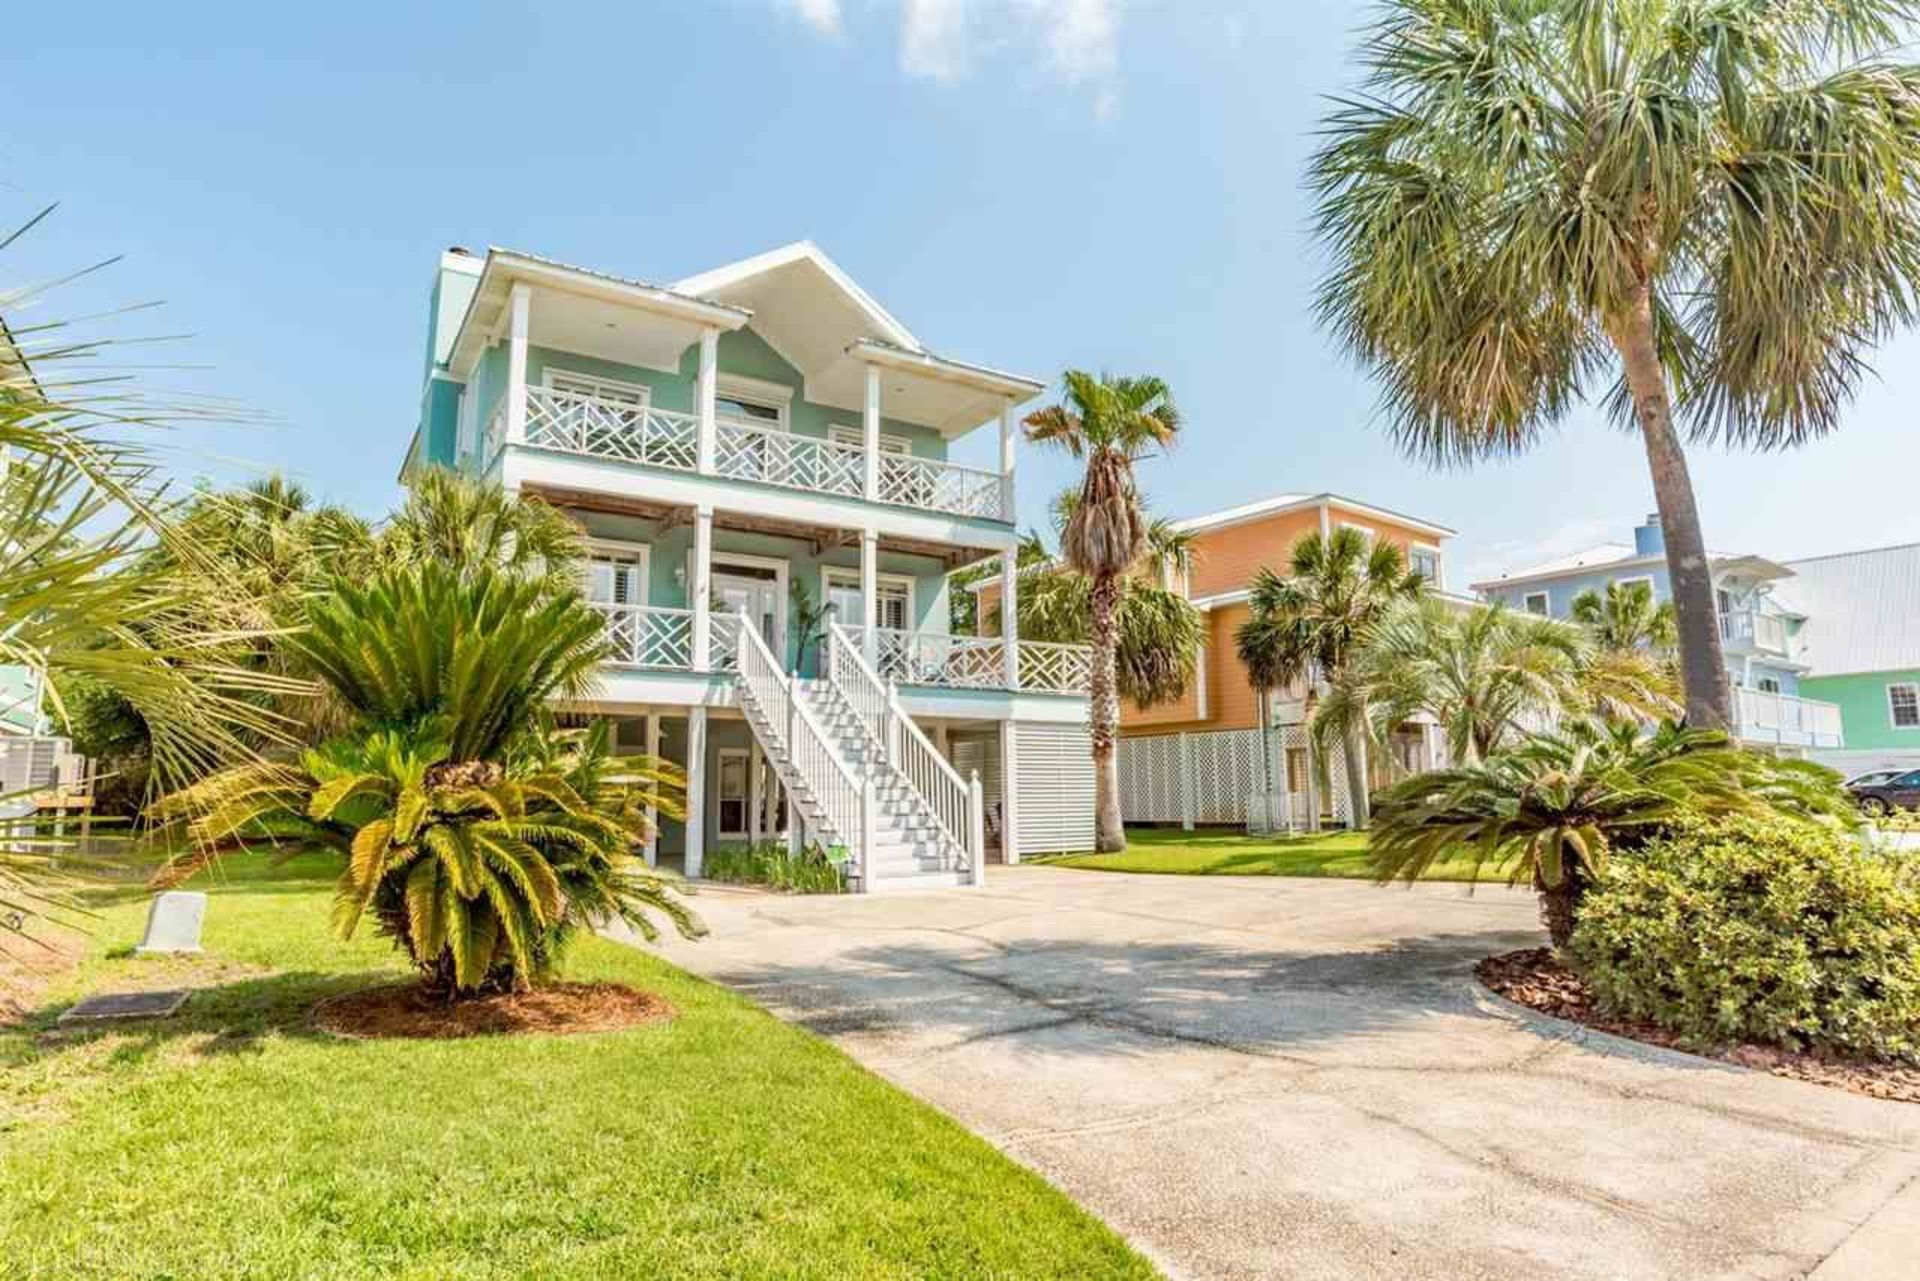 Homes for Sale in Terry Cove Harbor